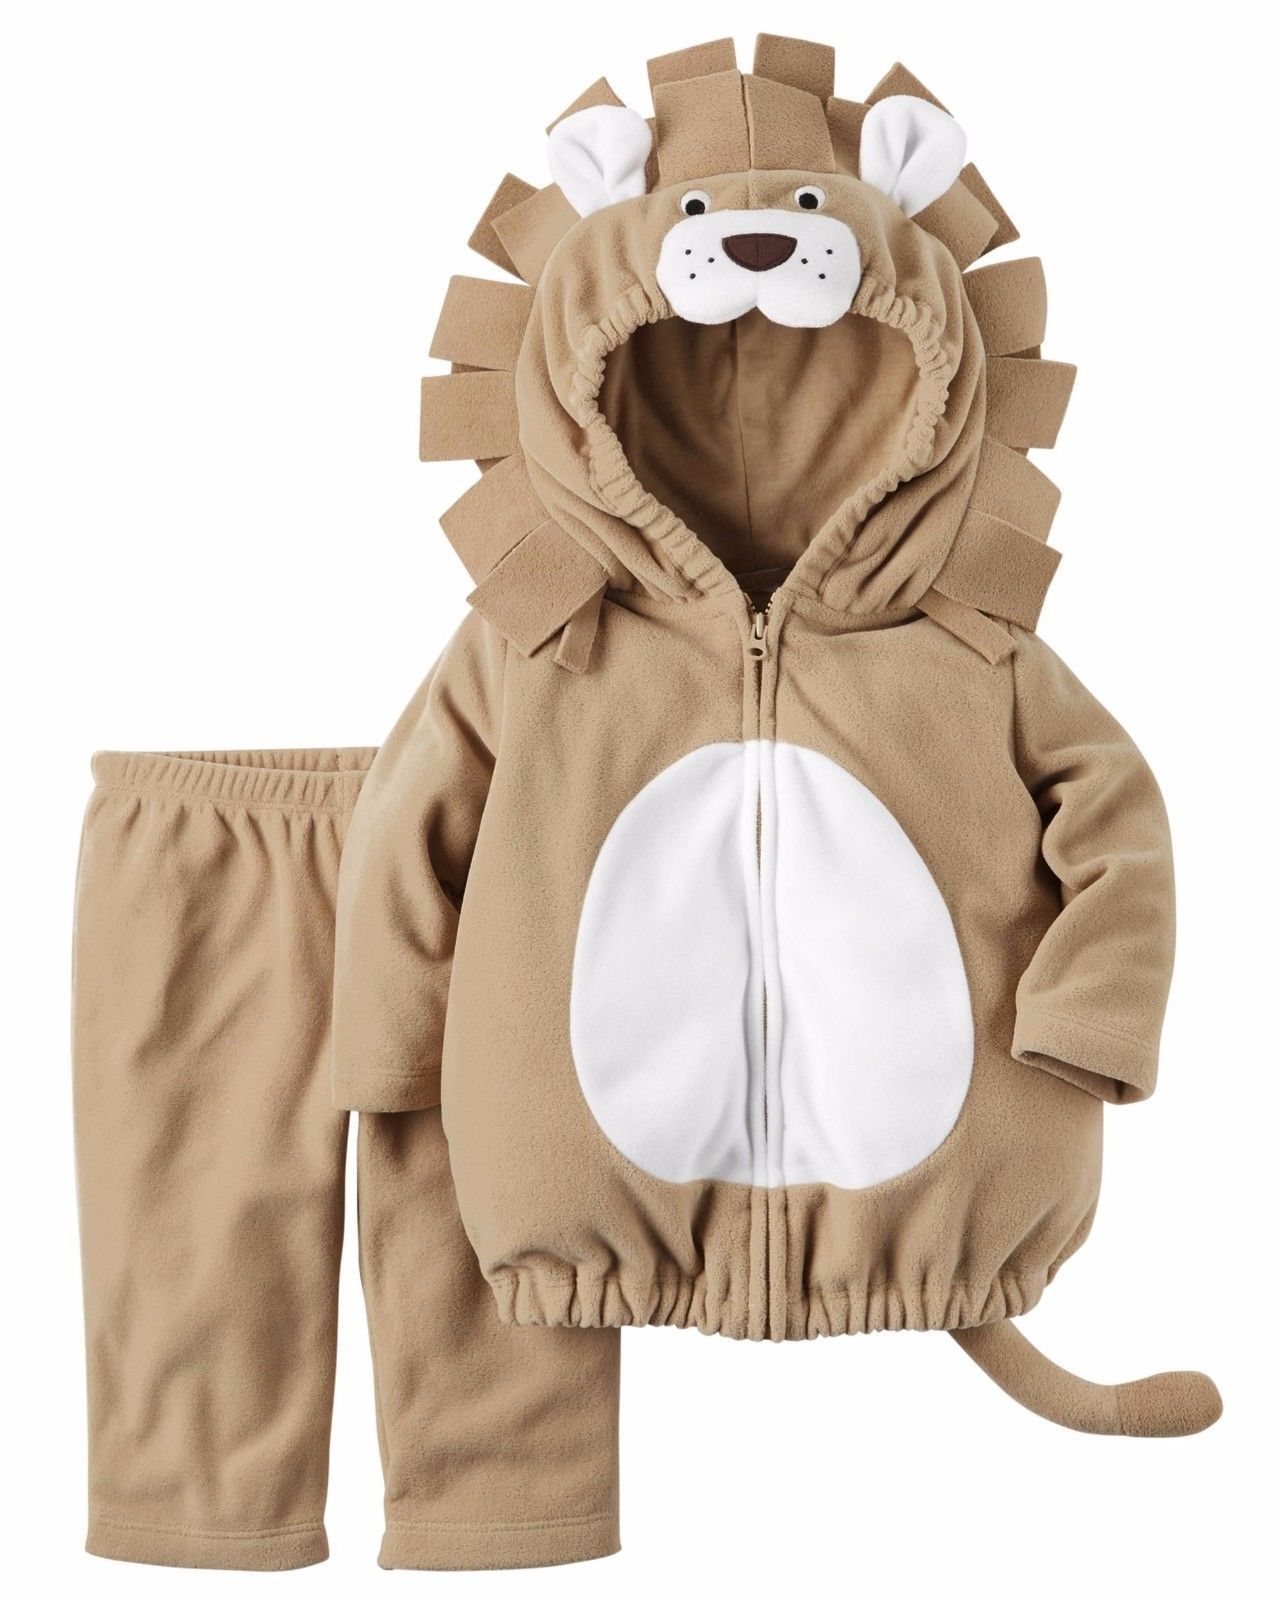 NEW NWT Carters Girls or Boys Lion Halloween Costume Size 3-6 Months